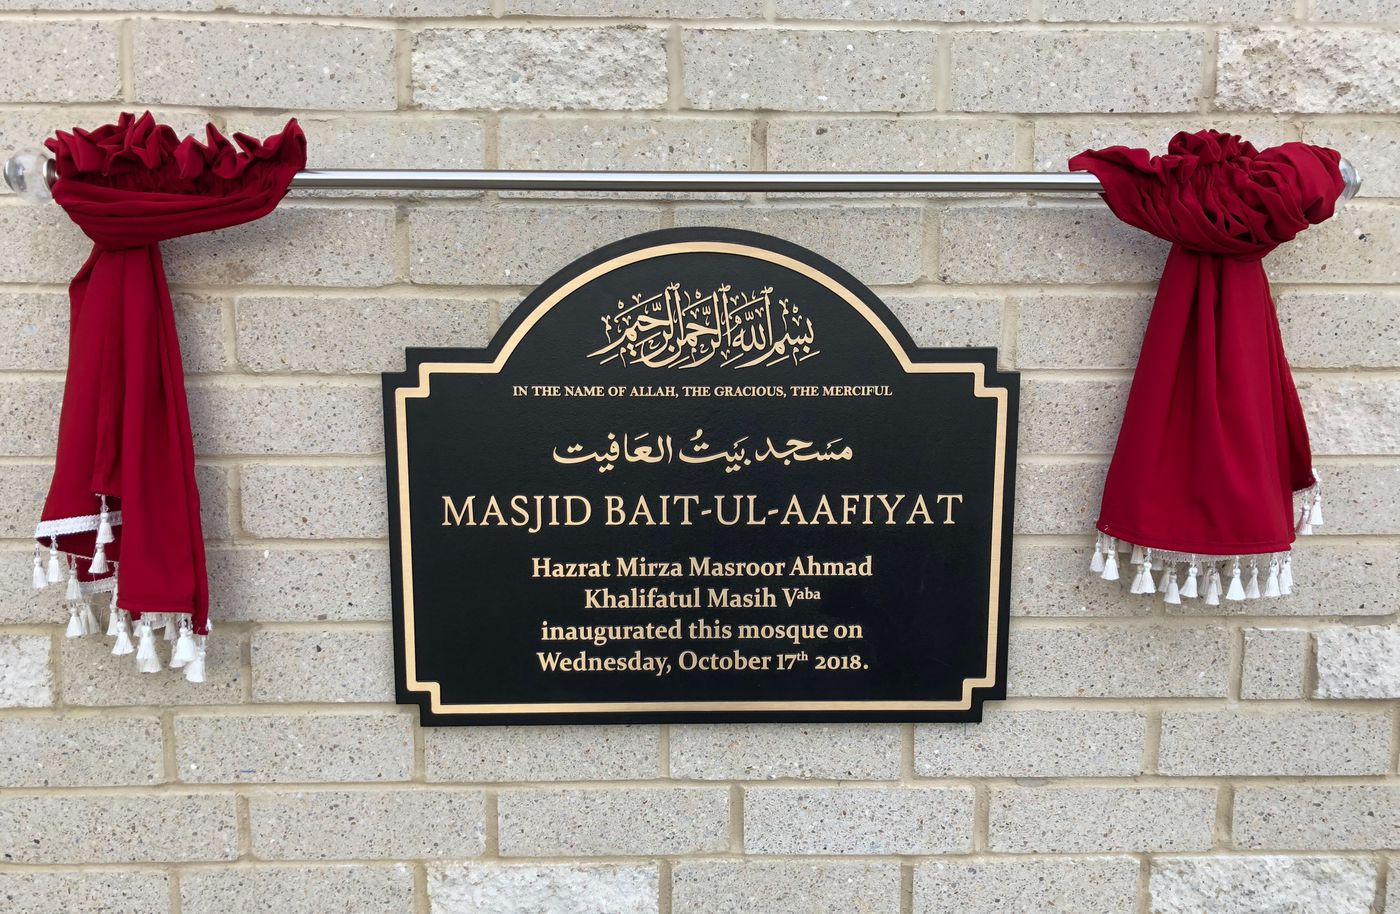 The Bait-ul-Aafiyat Mosque's dedication plaque